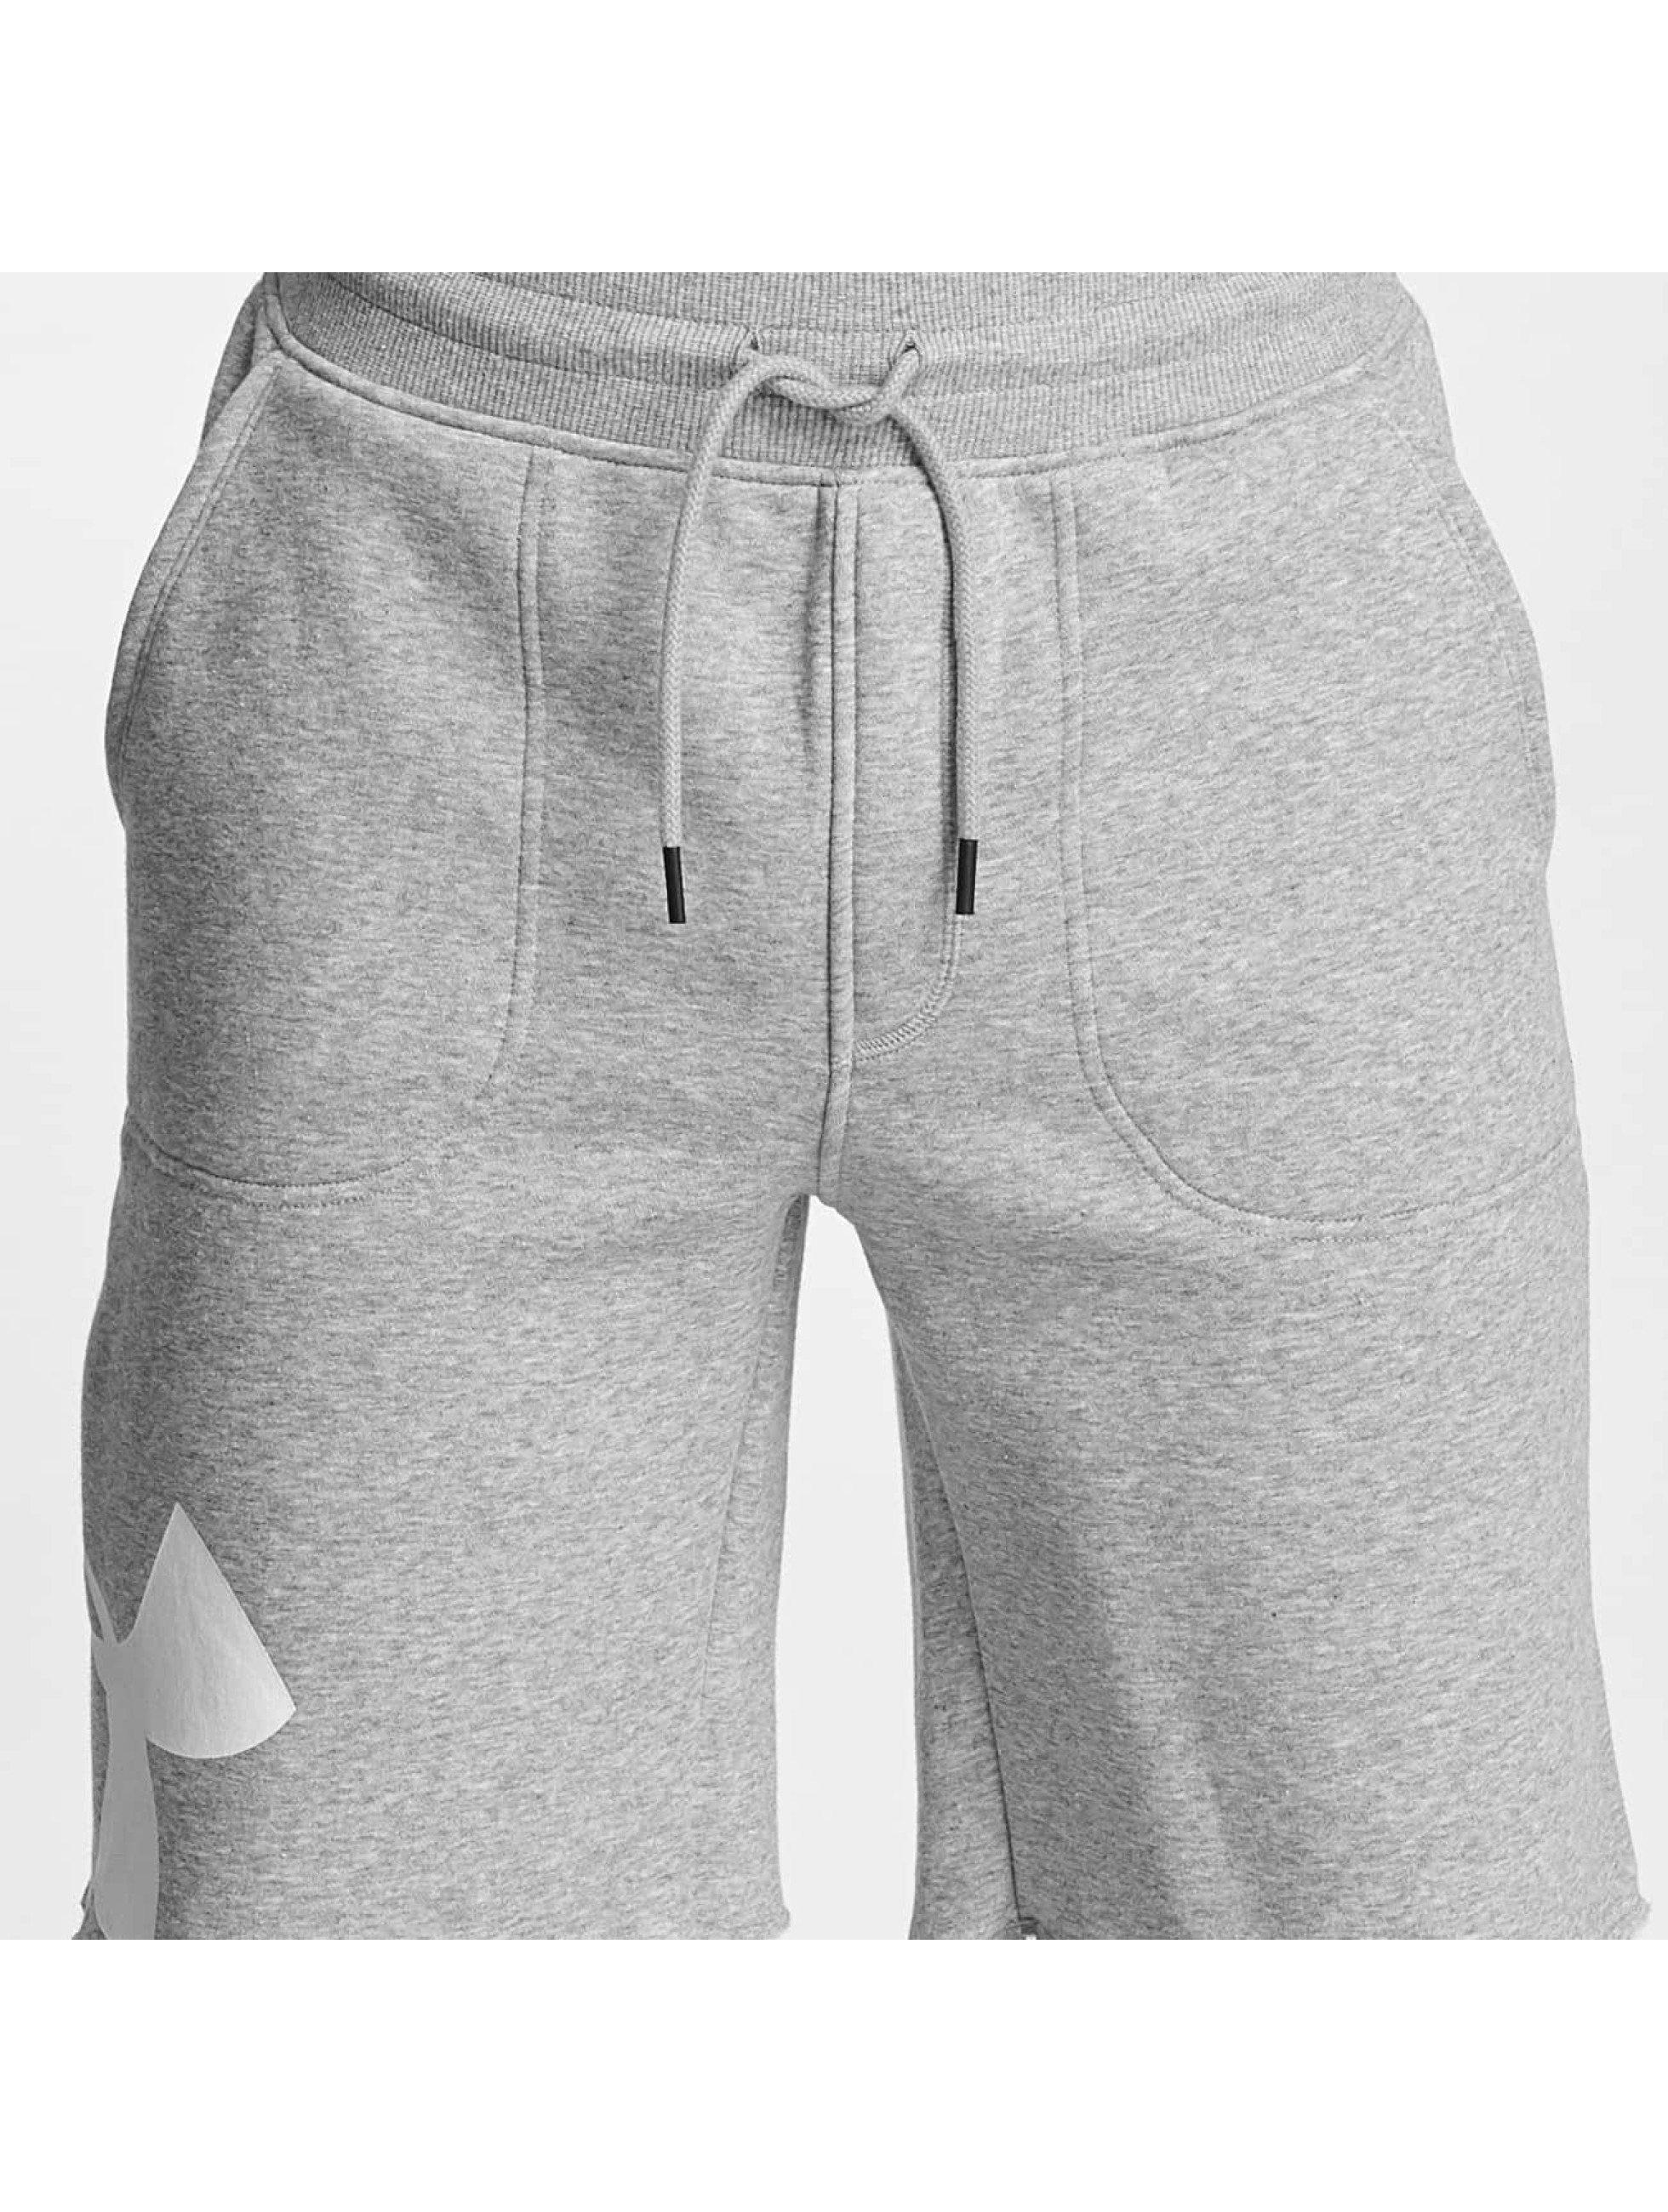 Under Armour Shorts Rival grau